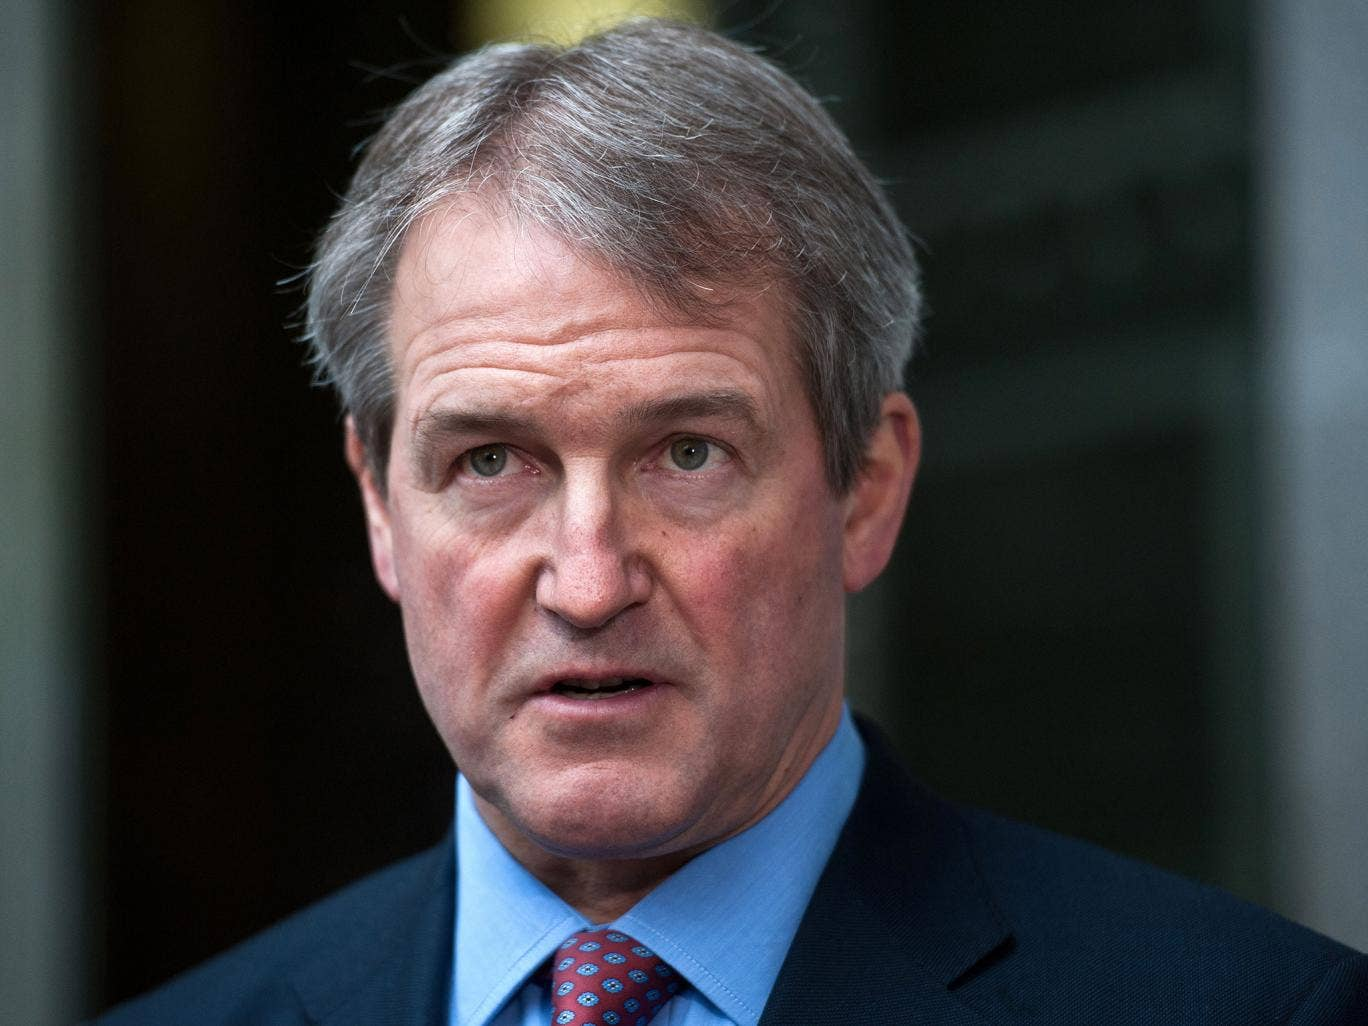 Owen Paterson is to deliver the annual lecture to the Global Warming Policy Foundation